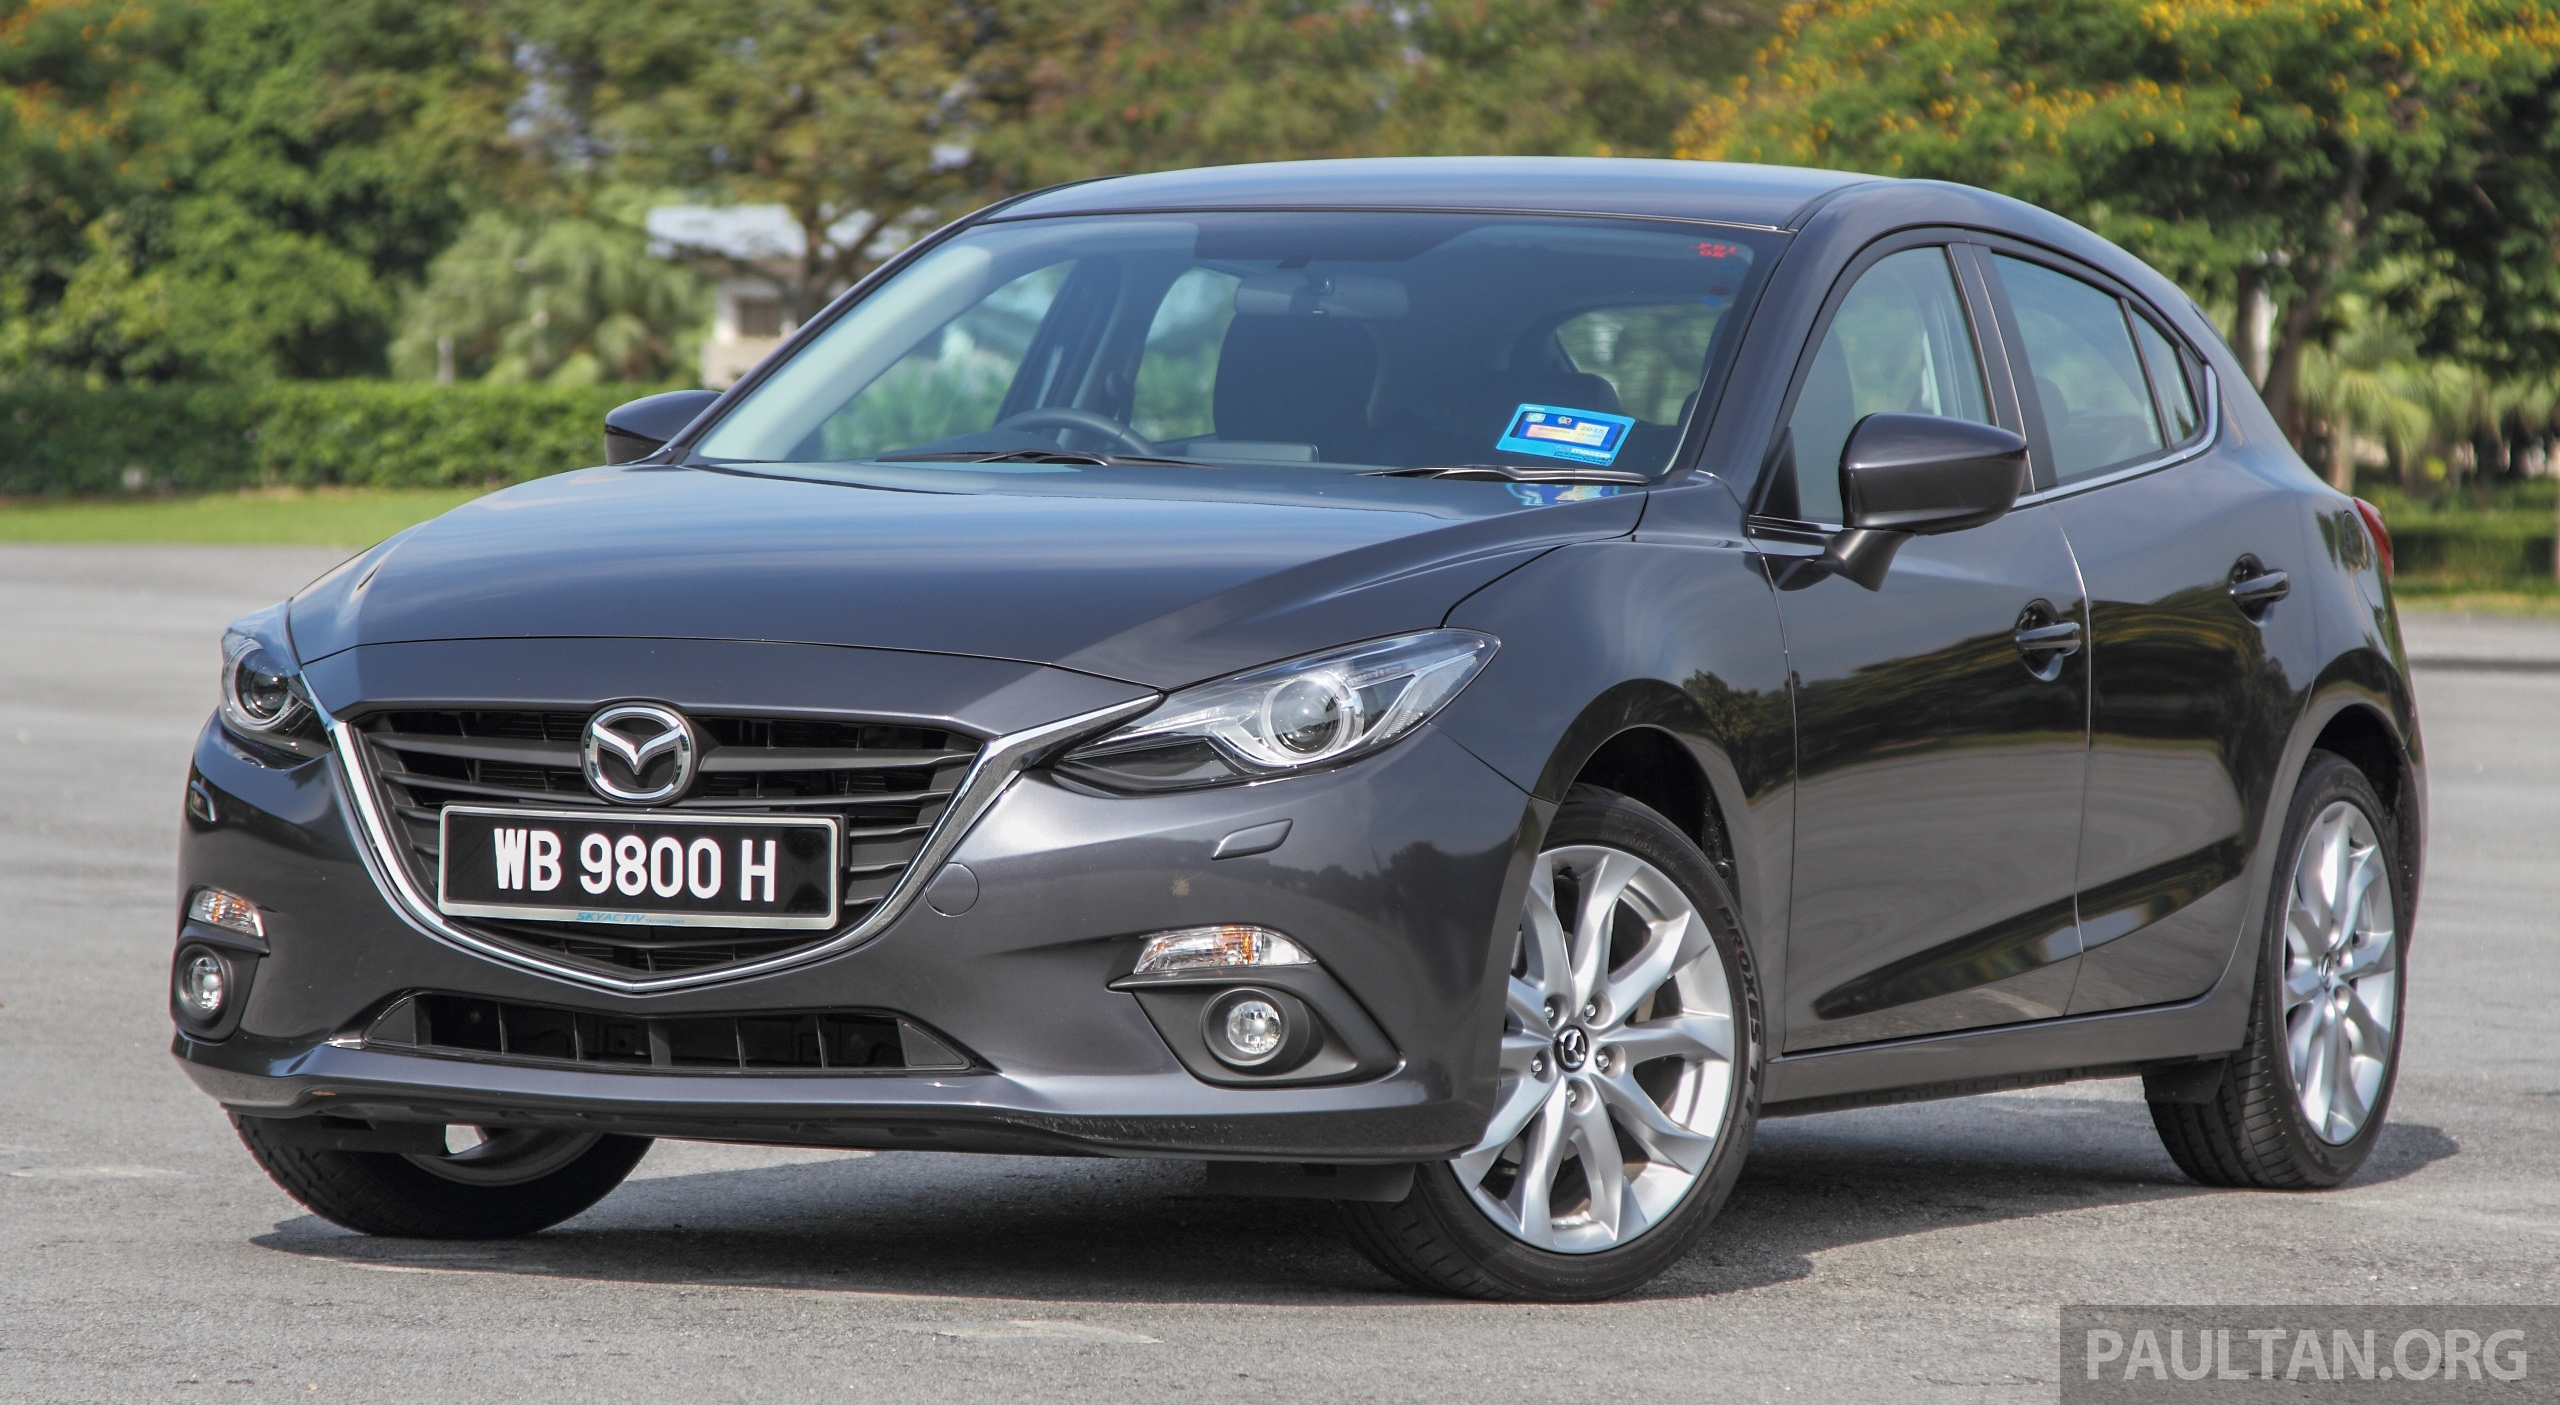 gallery 2015 mazda 3 ckd sedan vs hatchback image 337681. Black Bedroom Furniture Sets. Home Design Ideas